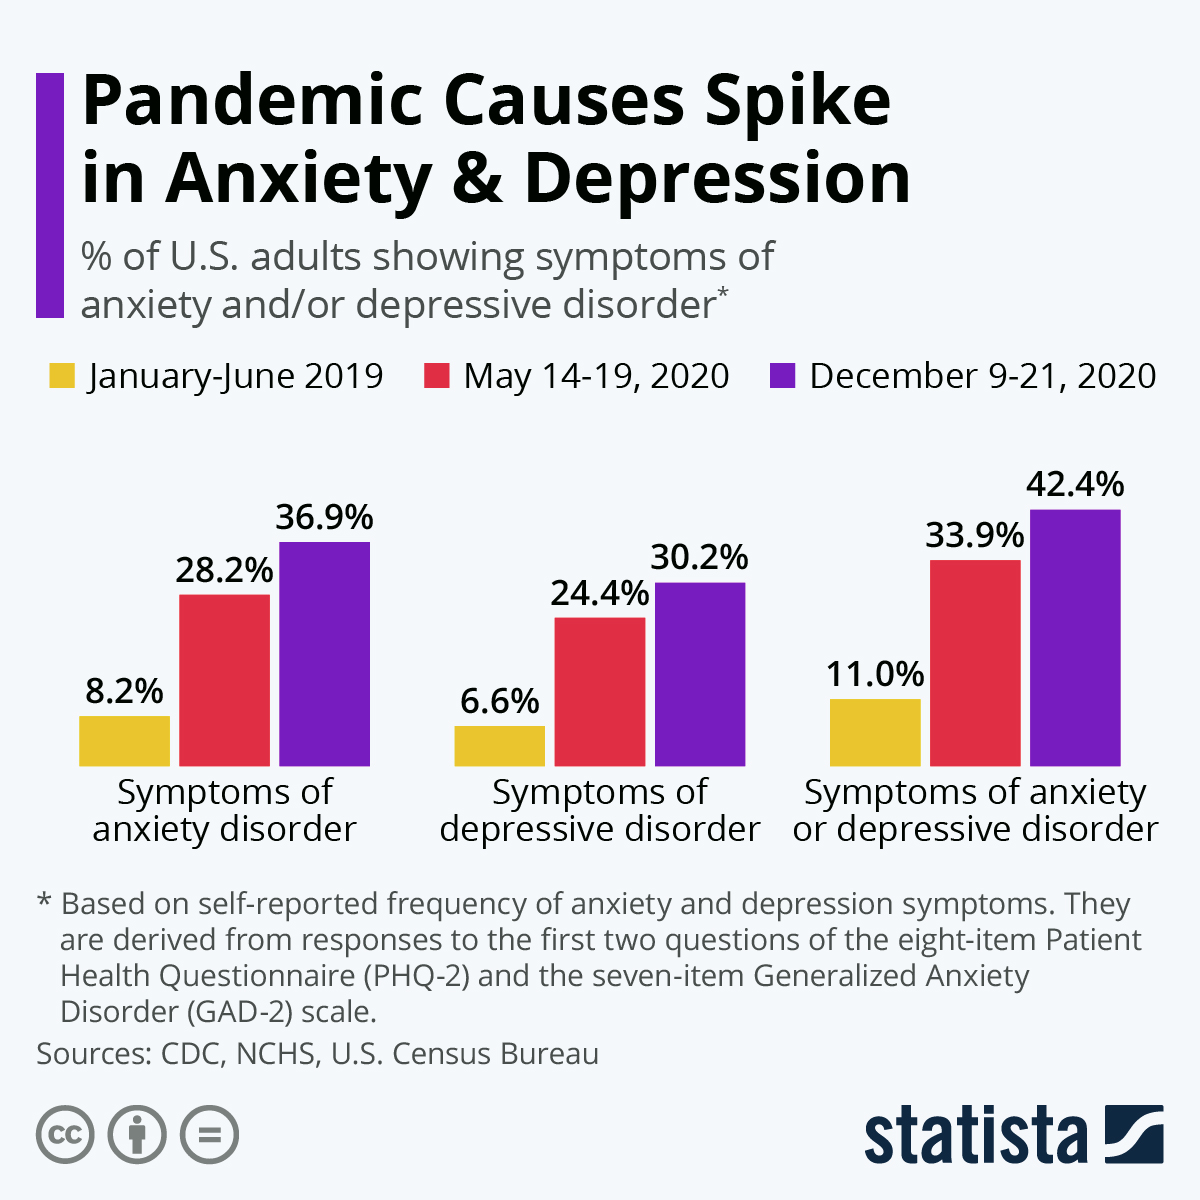 The epidemic exacerbated existing levels of mental health conditions